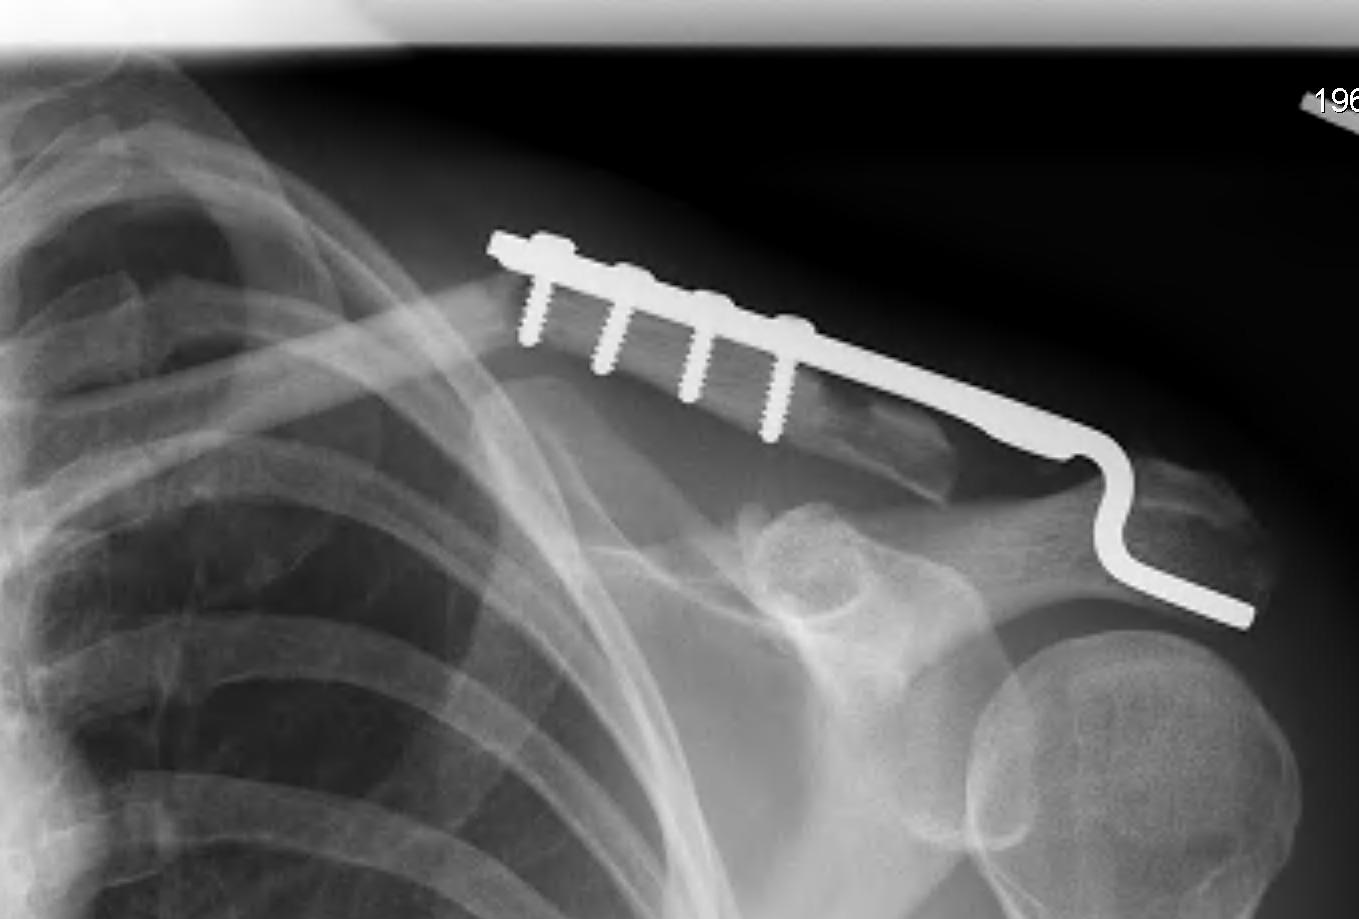 Clavicle Hook Plate Fracture